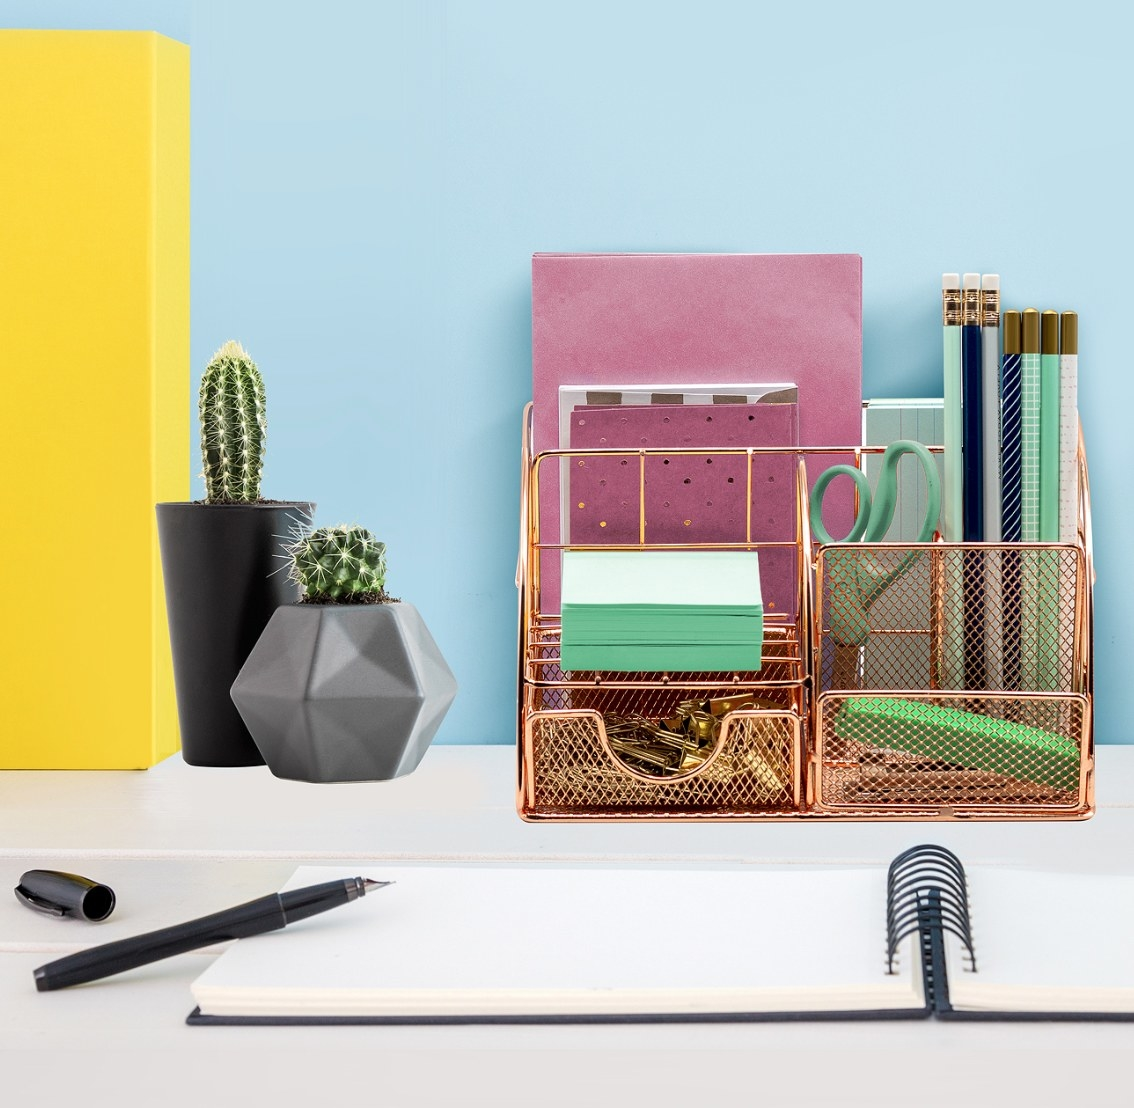 The desk organizer caddy in rose gold